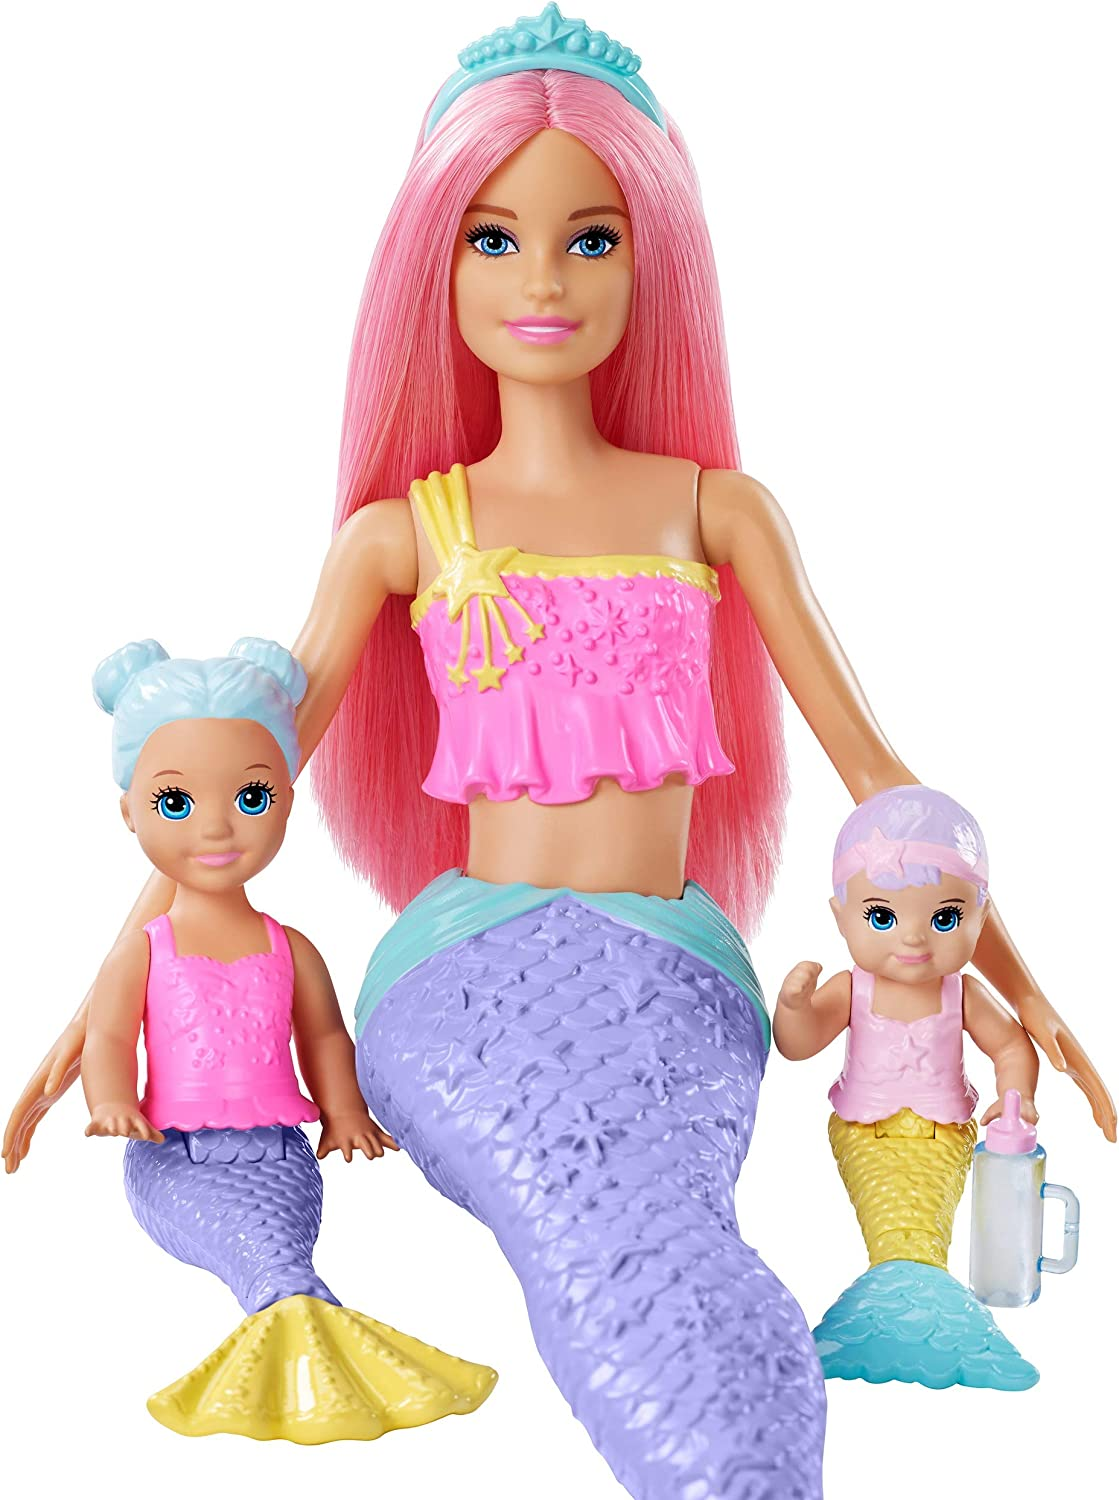 ?Barbie Dreamtopia Mermaid Nursery Playset with Barbie Mermaid Doll, Toddler and Baby Mermaid Dolls, Slide and Accessories, Gift for 3 to 7 Year Olds